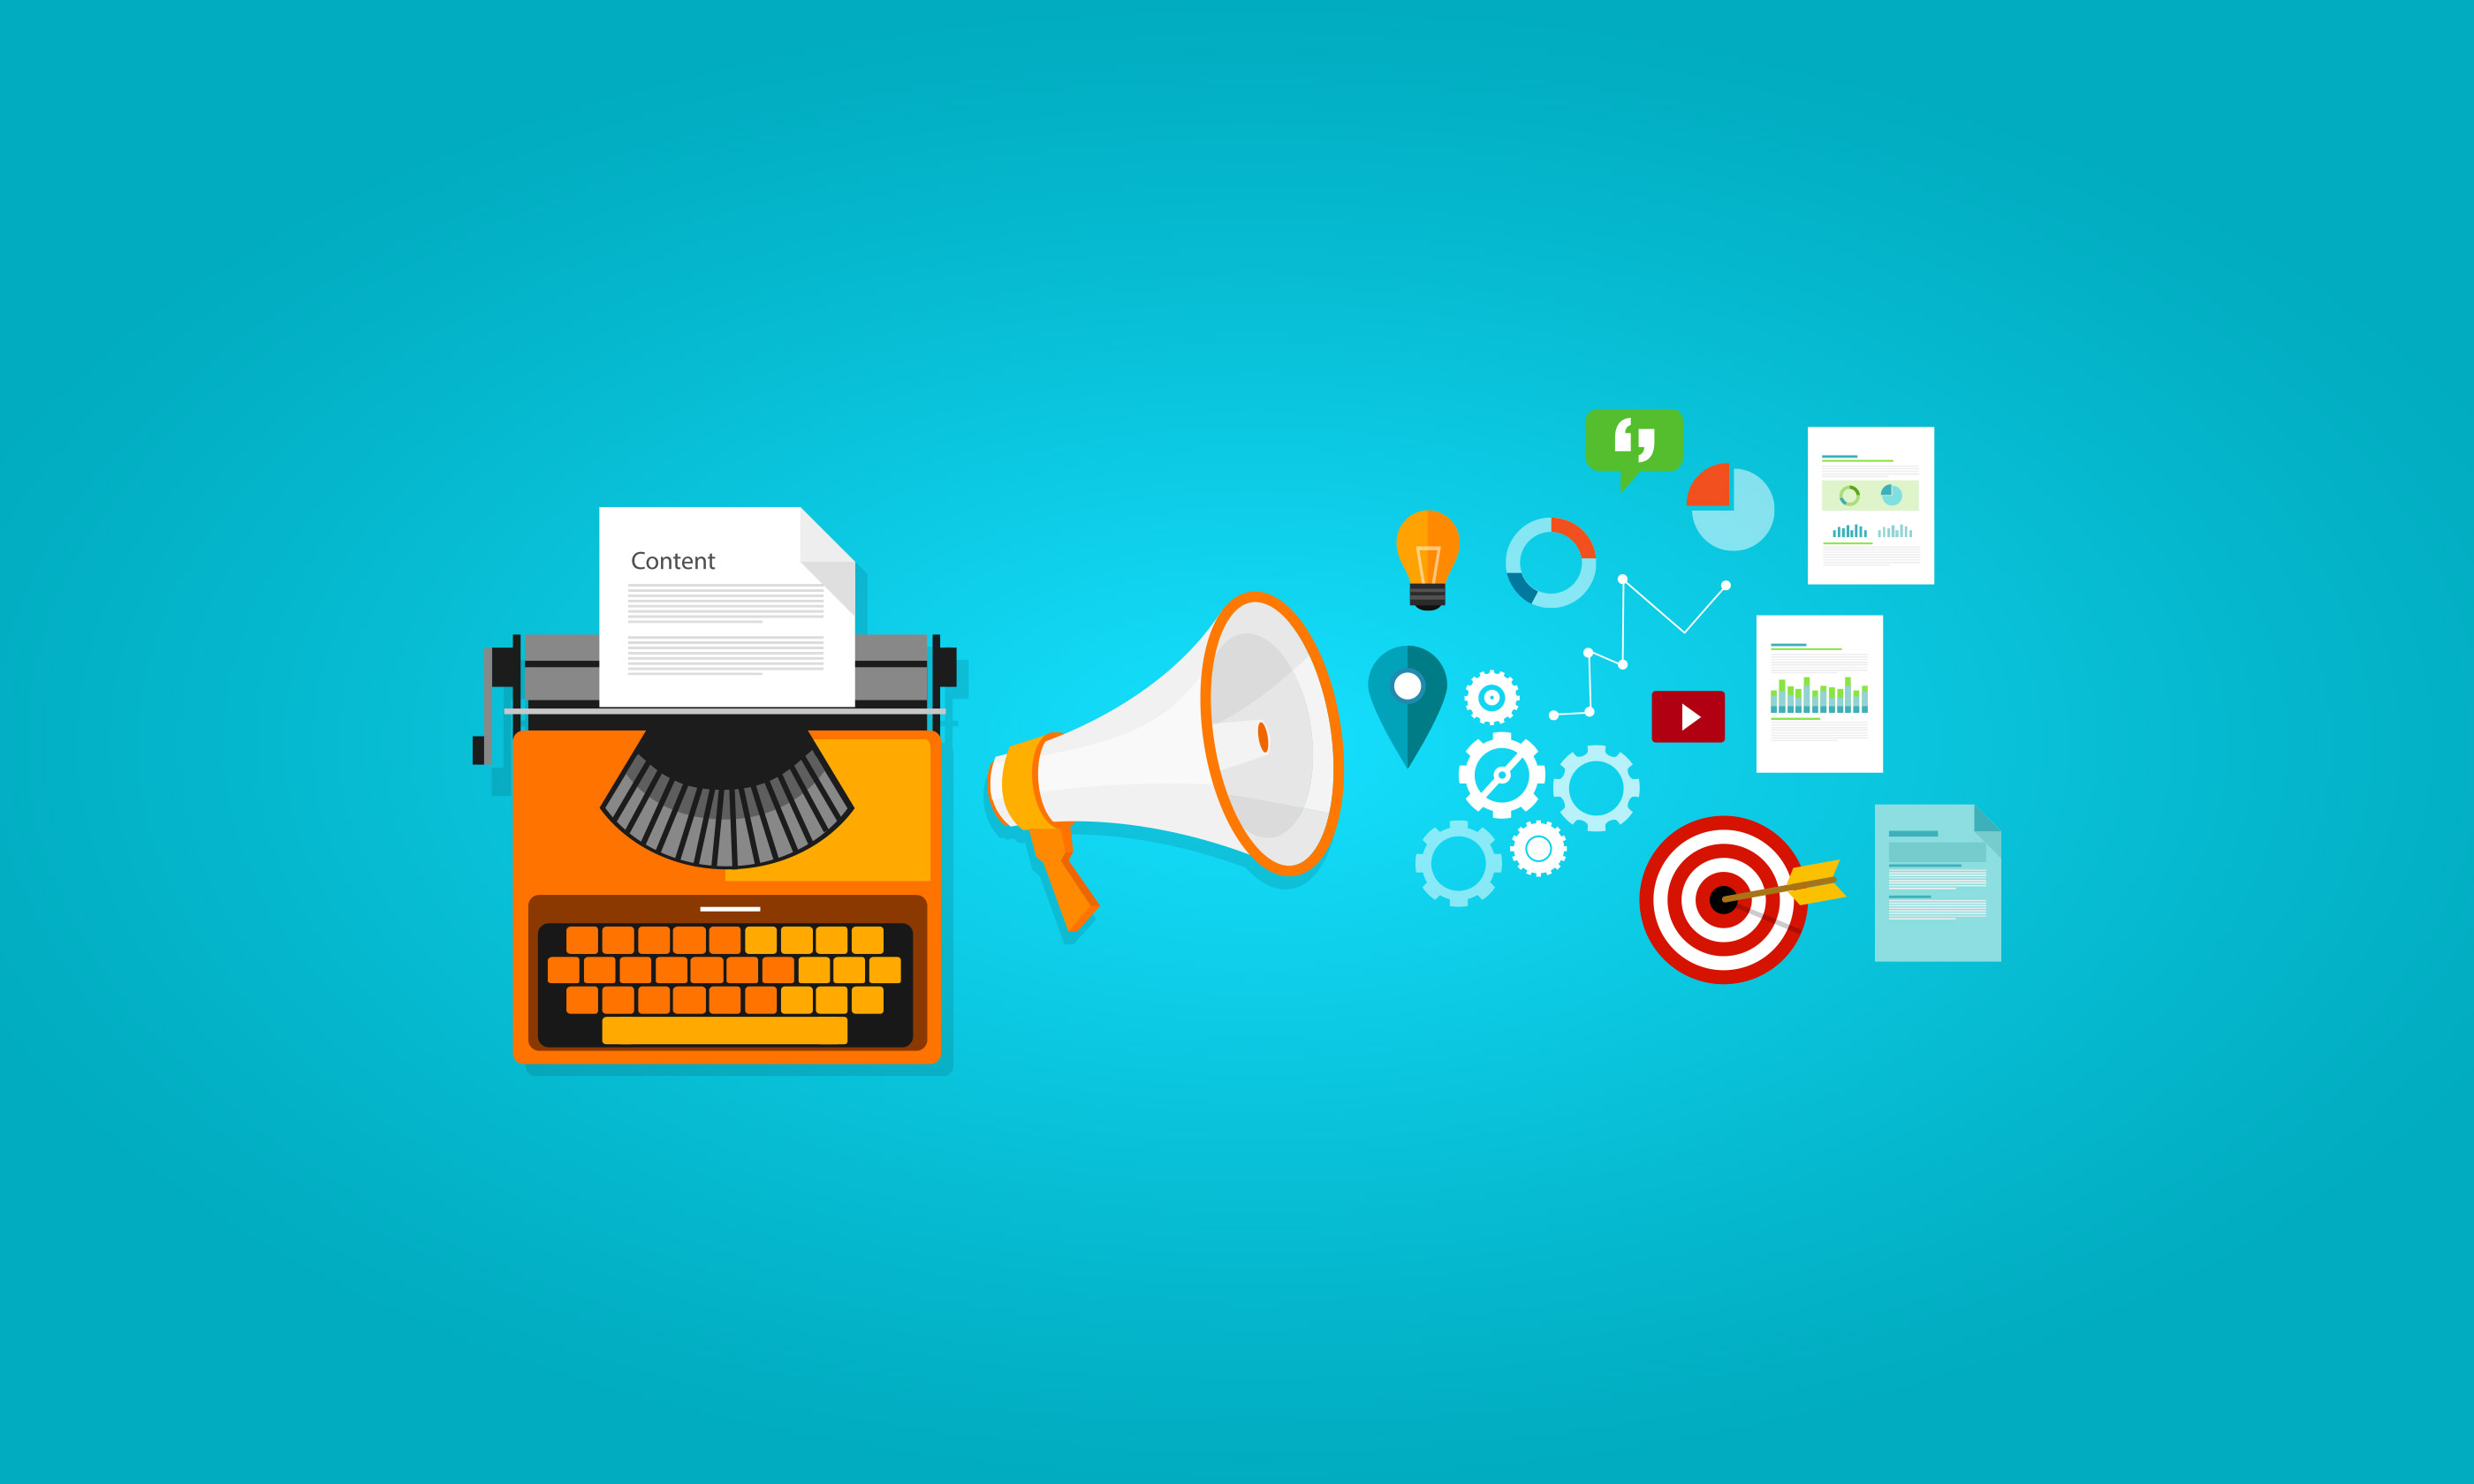 Content Marketing and Content Management Slider